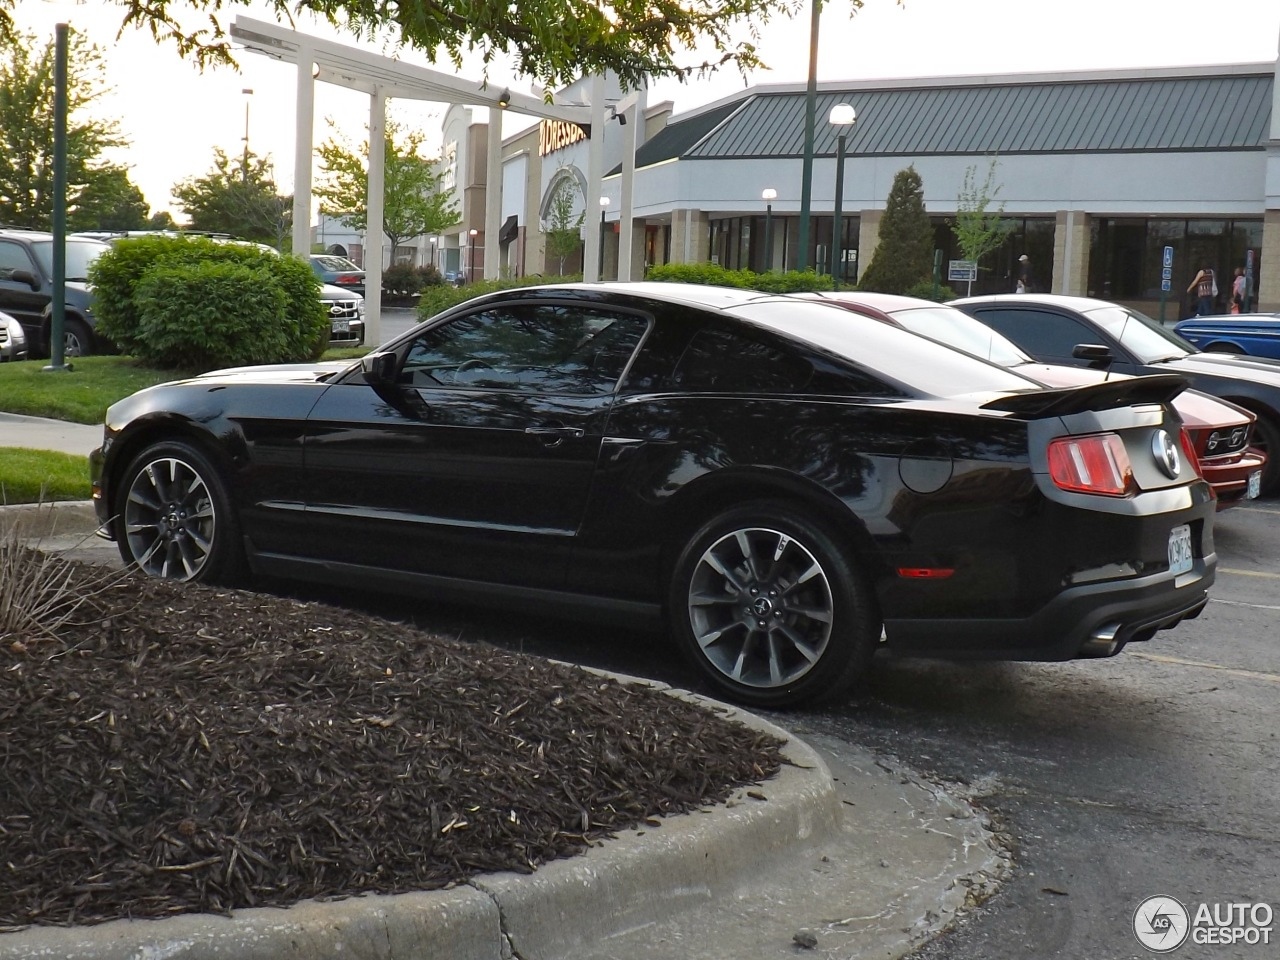 ford mustang gt 2010 california special 19 may 2013. Black Bedroom Furniture Sets. Home Design Ideas